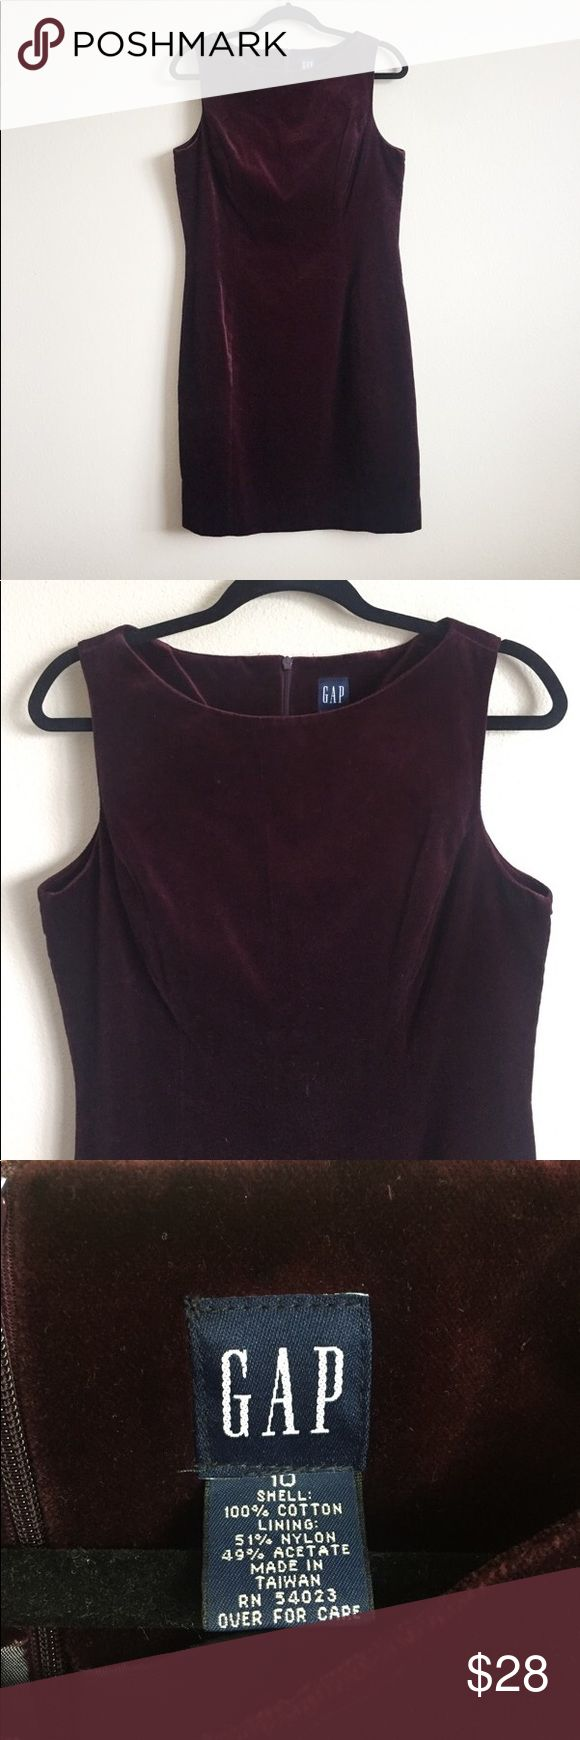 "* GAP * Soft velvet dress from Gap. Color is a beautiful burgundy. Fully lined. Zip closure on back. No slits on the hemline. Length is 36"". Not from the outlet store. In perfect condition. GAP Dresses"